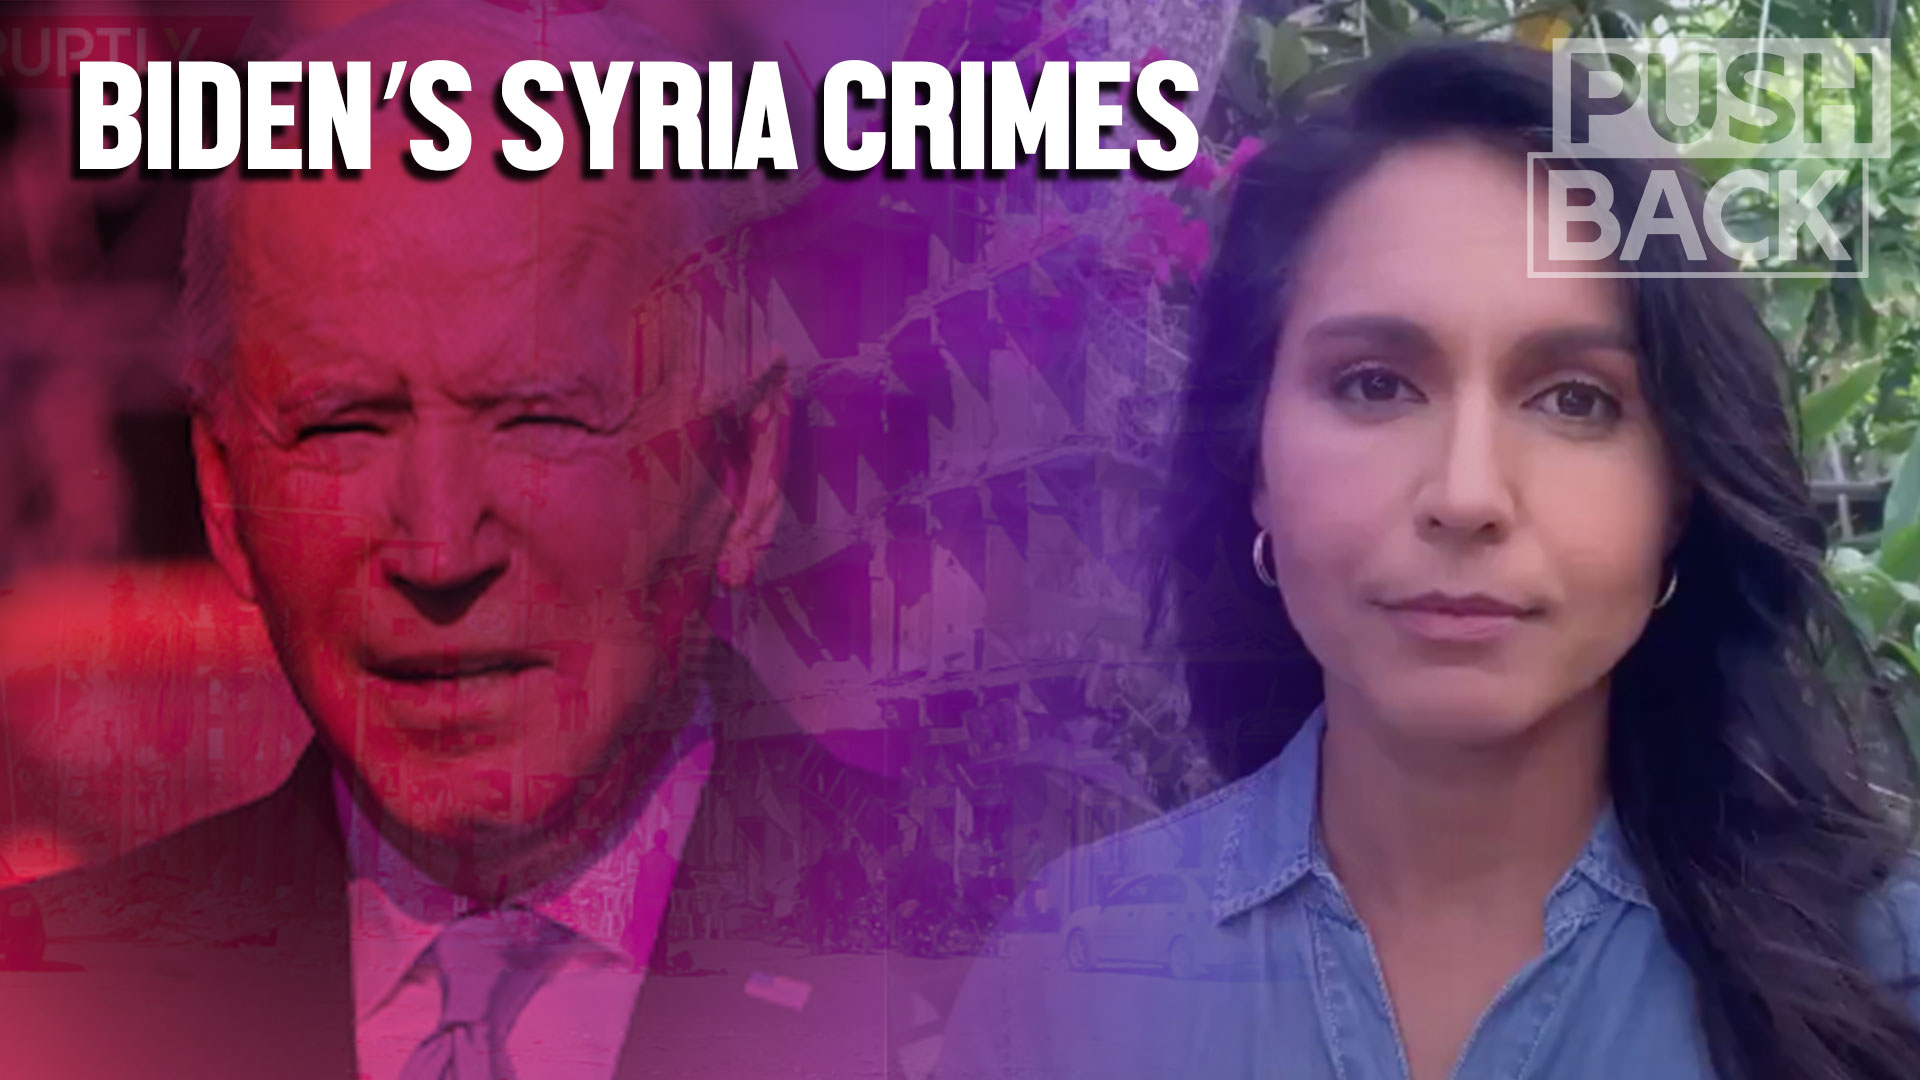 Tulsi Gabbard calls out the US dirty war on Syria that Biden, aides admit to | The Grayzone